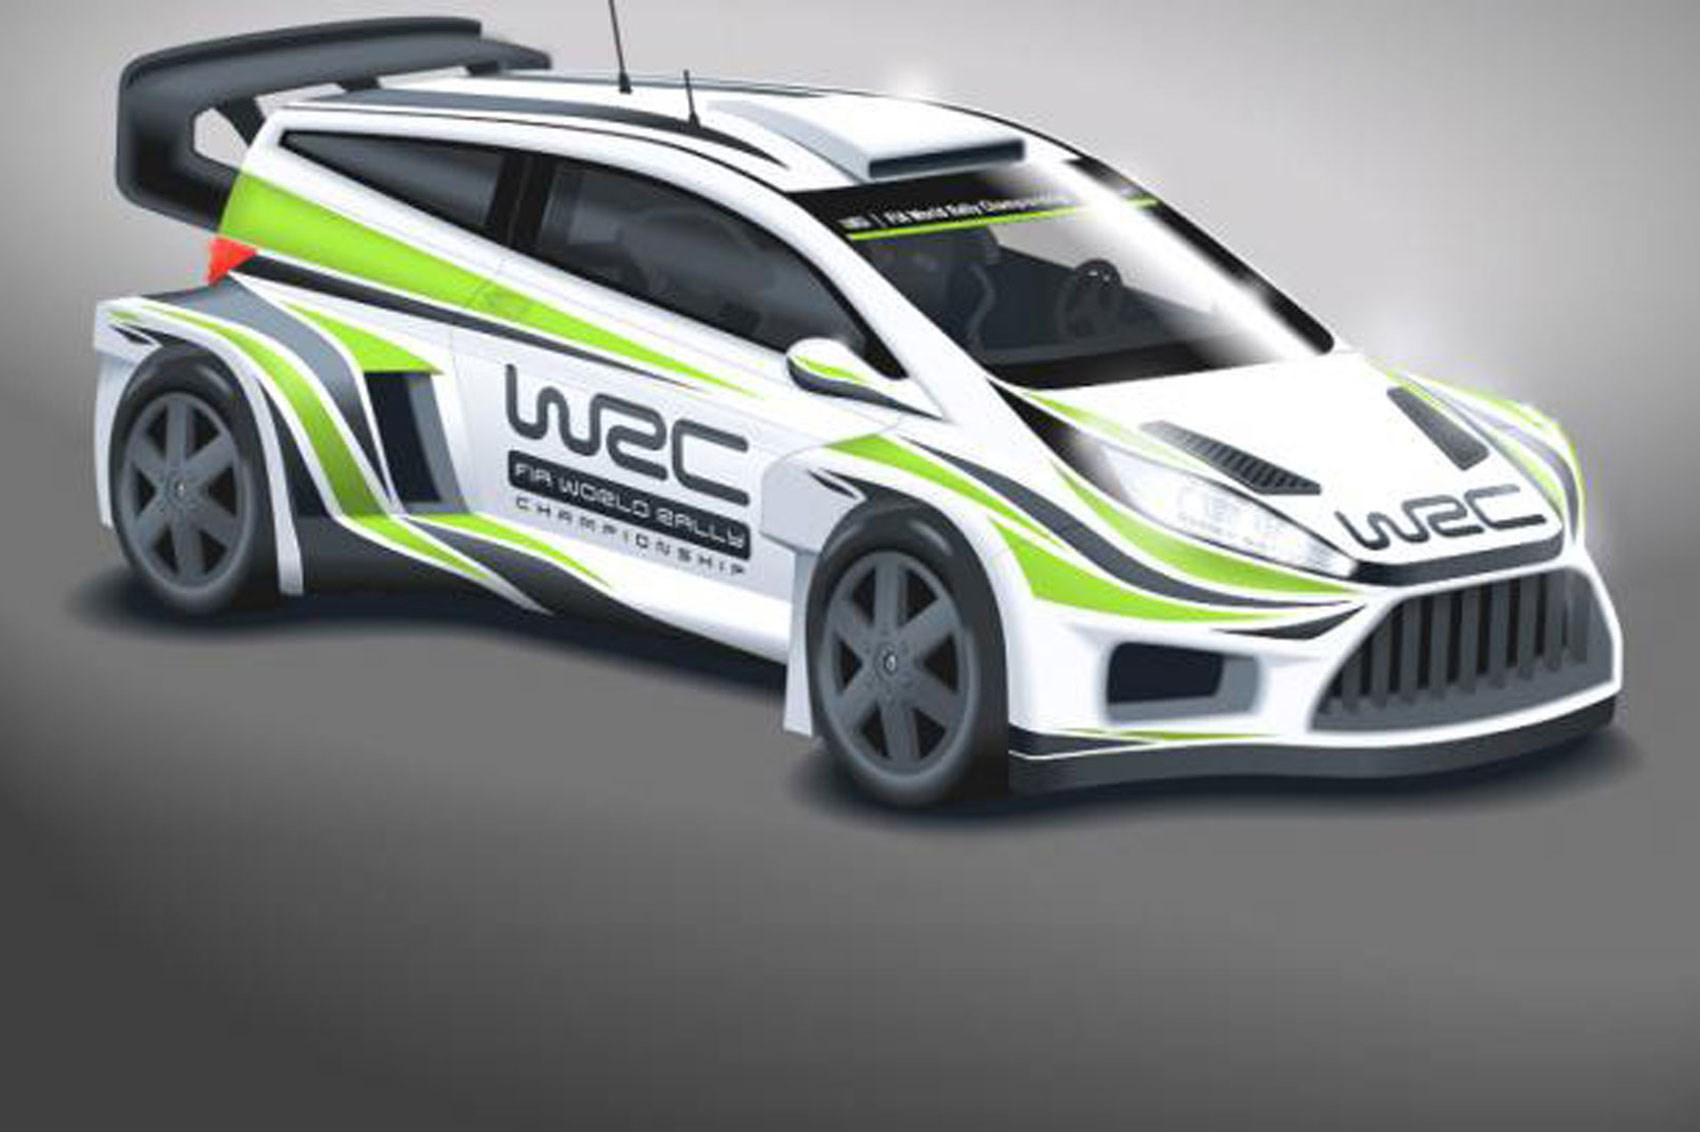 Ultrablogus  Stunning Wild New Look For Wrc Cars In  By Car Magazine With Great Wrc Cars Will Get Wider Bodies Bigger Wings And More Power For  With Extraordinary Honda Cr Z Interior Also Ford Ecosport Interior Review In Addition Ssc Ultimate Aero Interior And Toyota Hilux Interior As Well As Defender Interior Upgrades Additionally Interior Nissan Navara From Carmagazinecouk With Ultrablogus  Great Wild New Look For Wrc Cars In  By Car Magazine With Extraordinary Wrc Cars Will Get Wider Bodies Bigger Wings And More Power For  And Stunning Honda Cr Z Interior Also Ford Ecosport Interior Review In Addition Ssc Ultimate Aero Interior From Carmagazinecouk